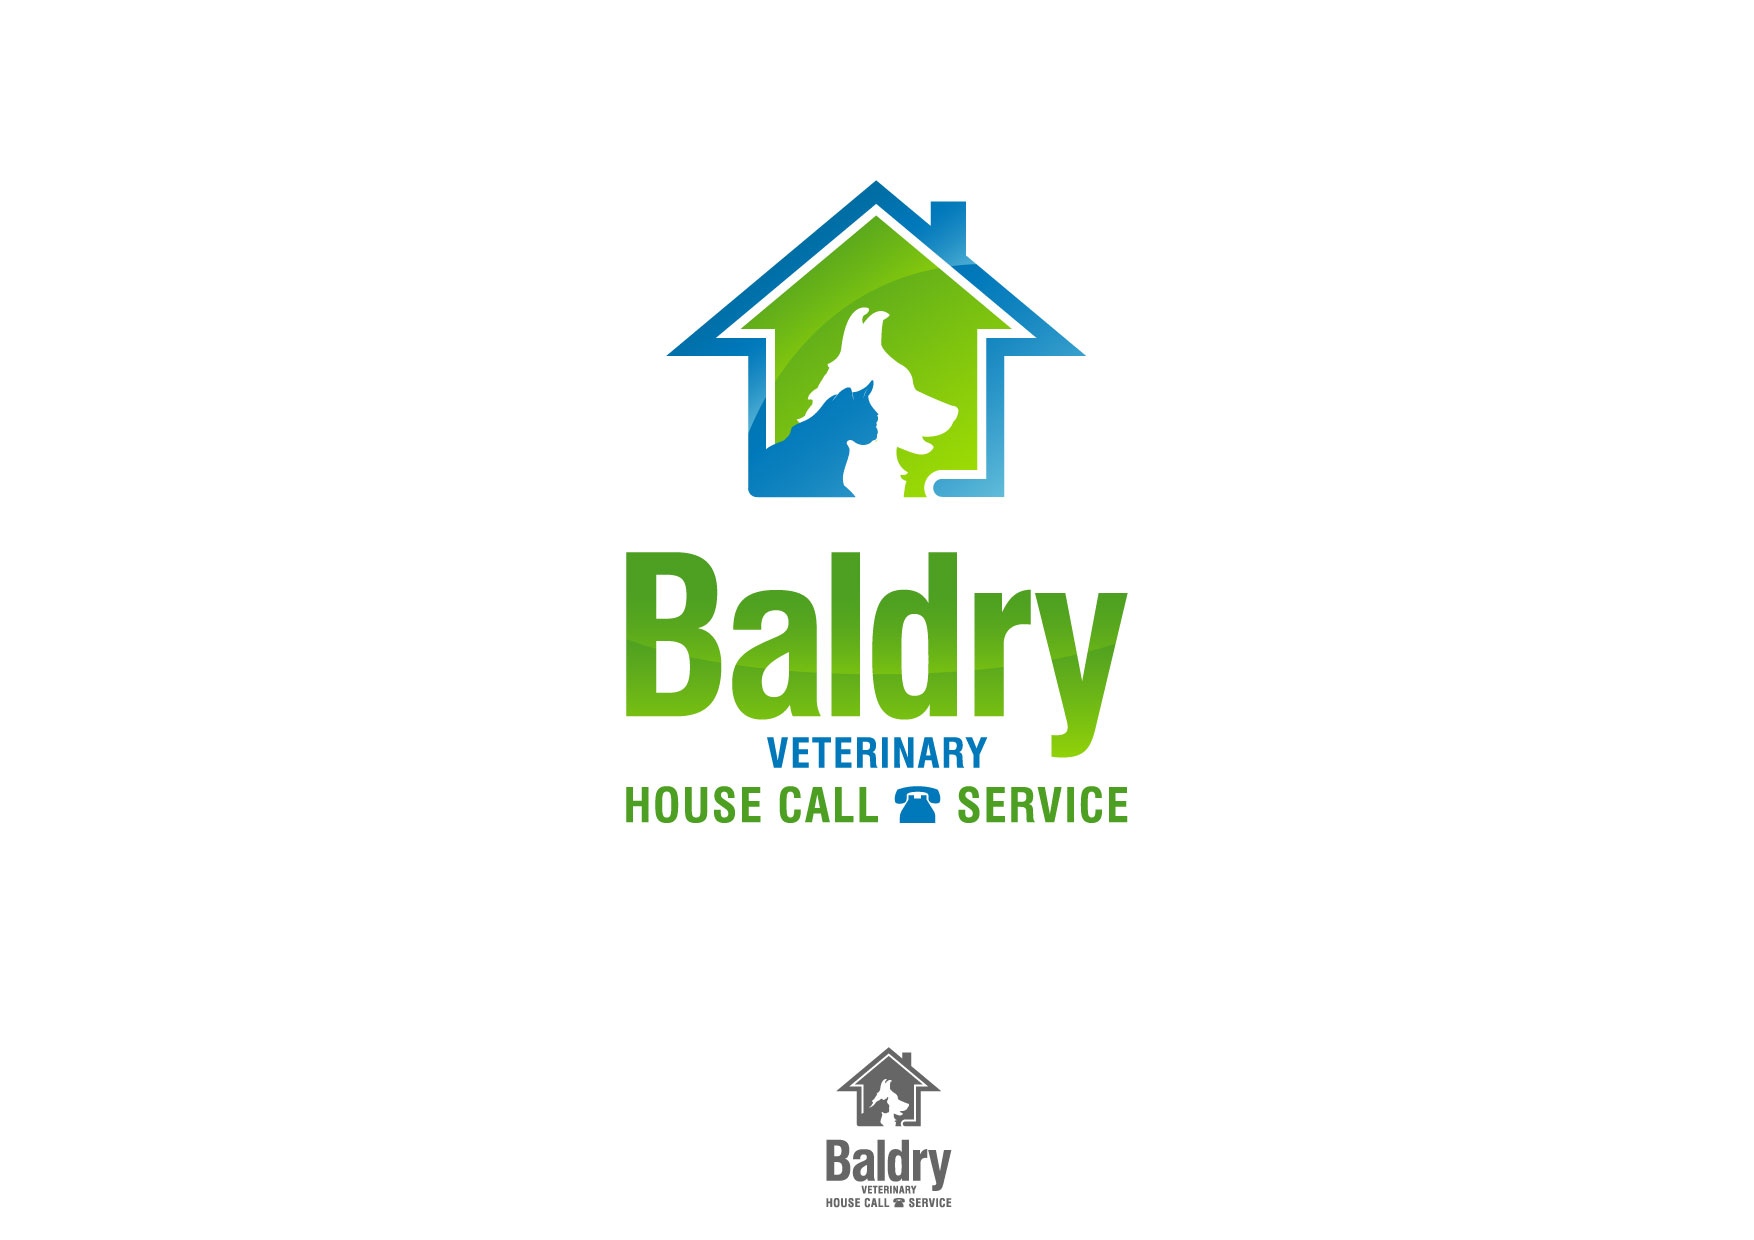 Logo Design by Nurgalih Destianto - Entry No. 180 in the Logo Design Contest Captivating Logo Design for Baldry Veterinary House Call Service.